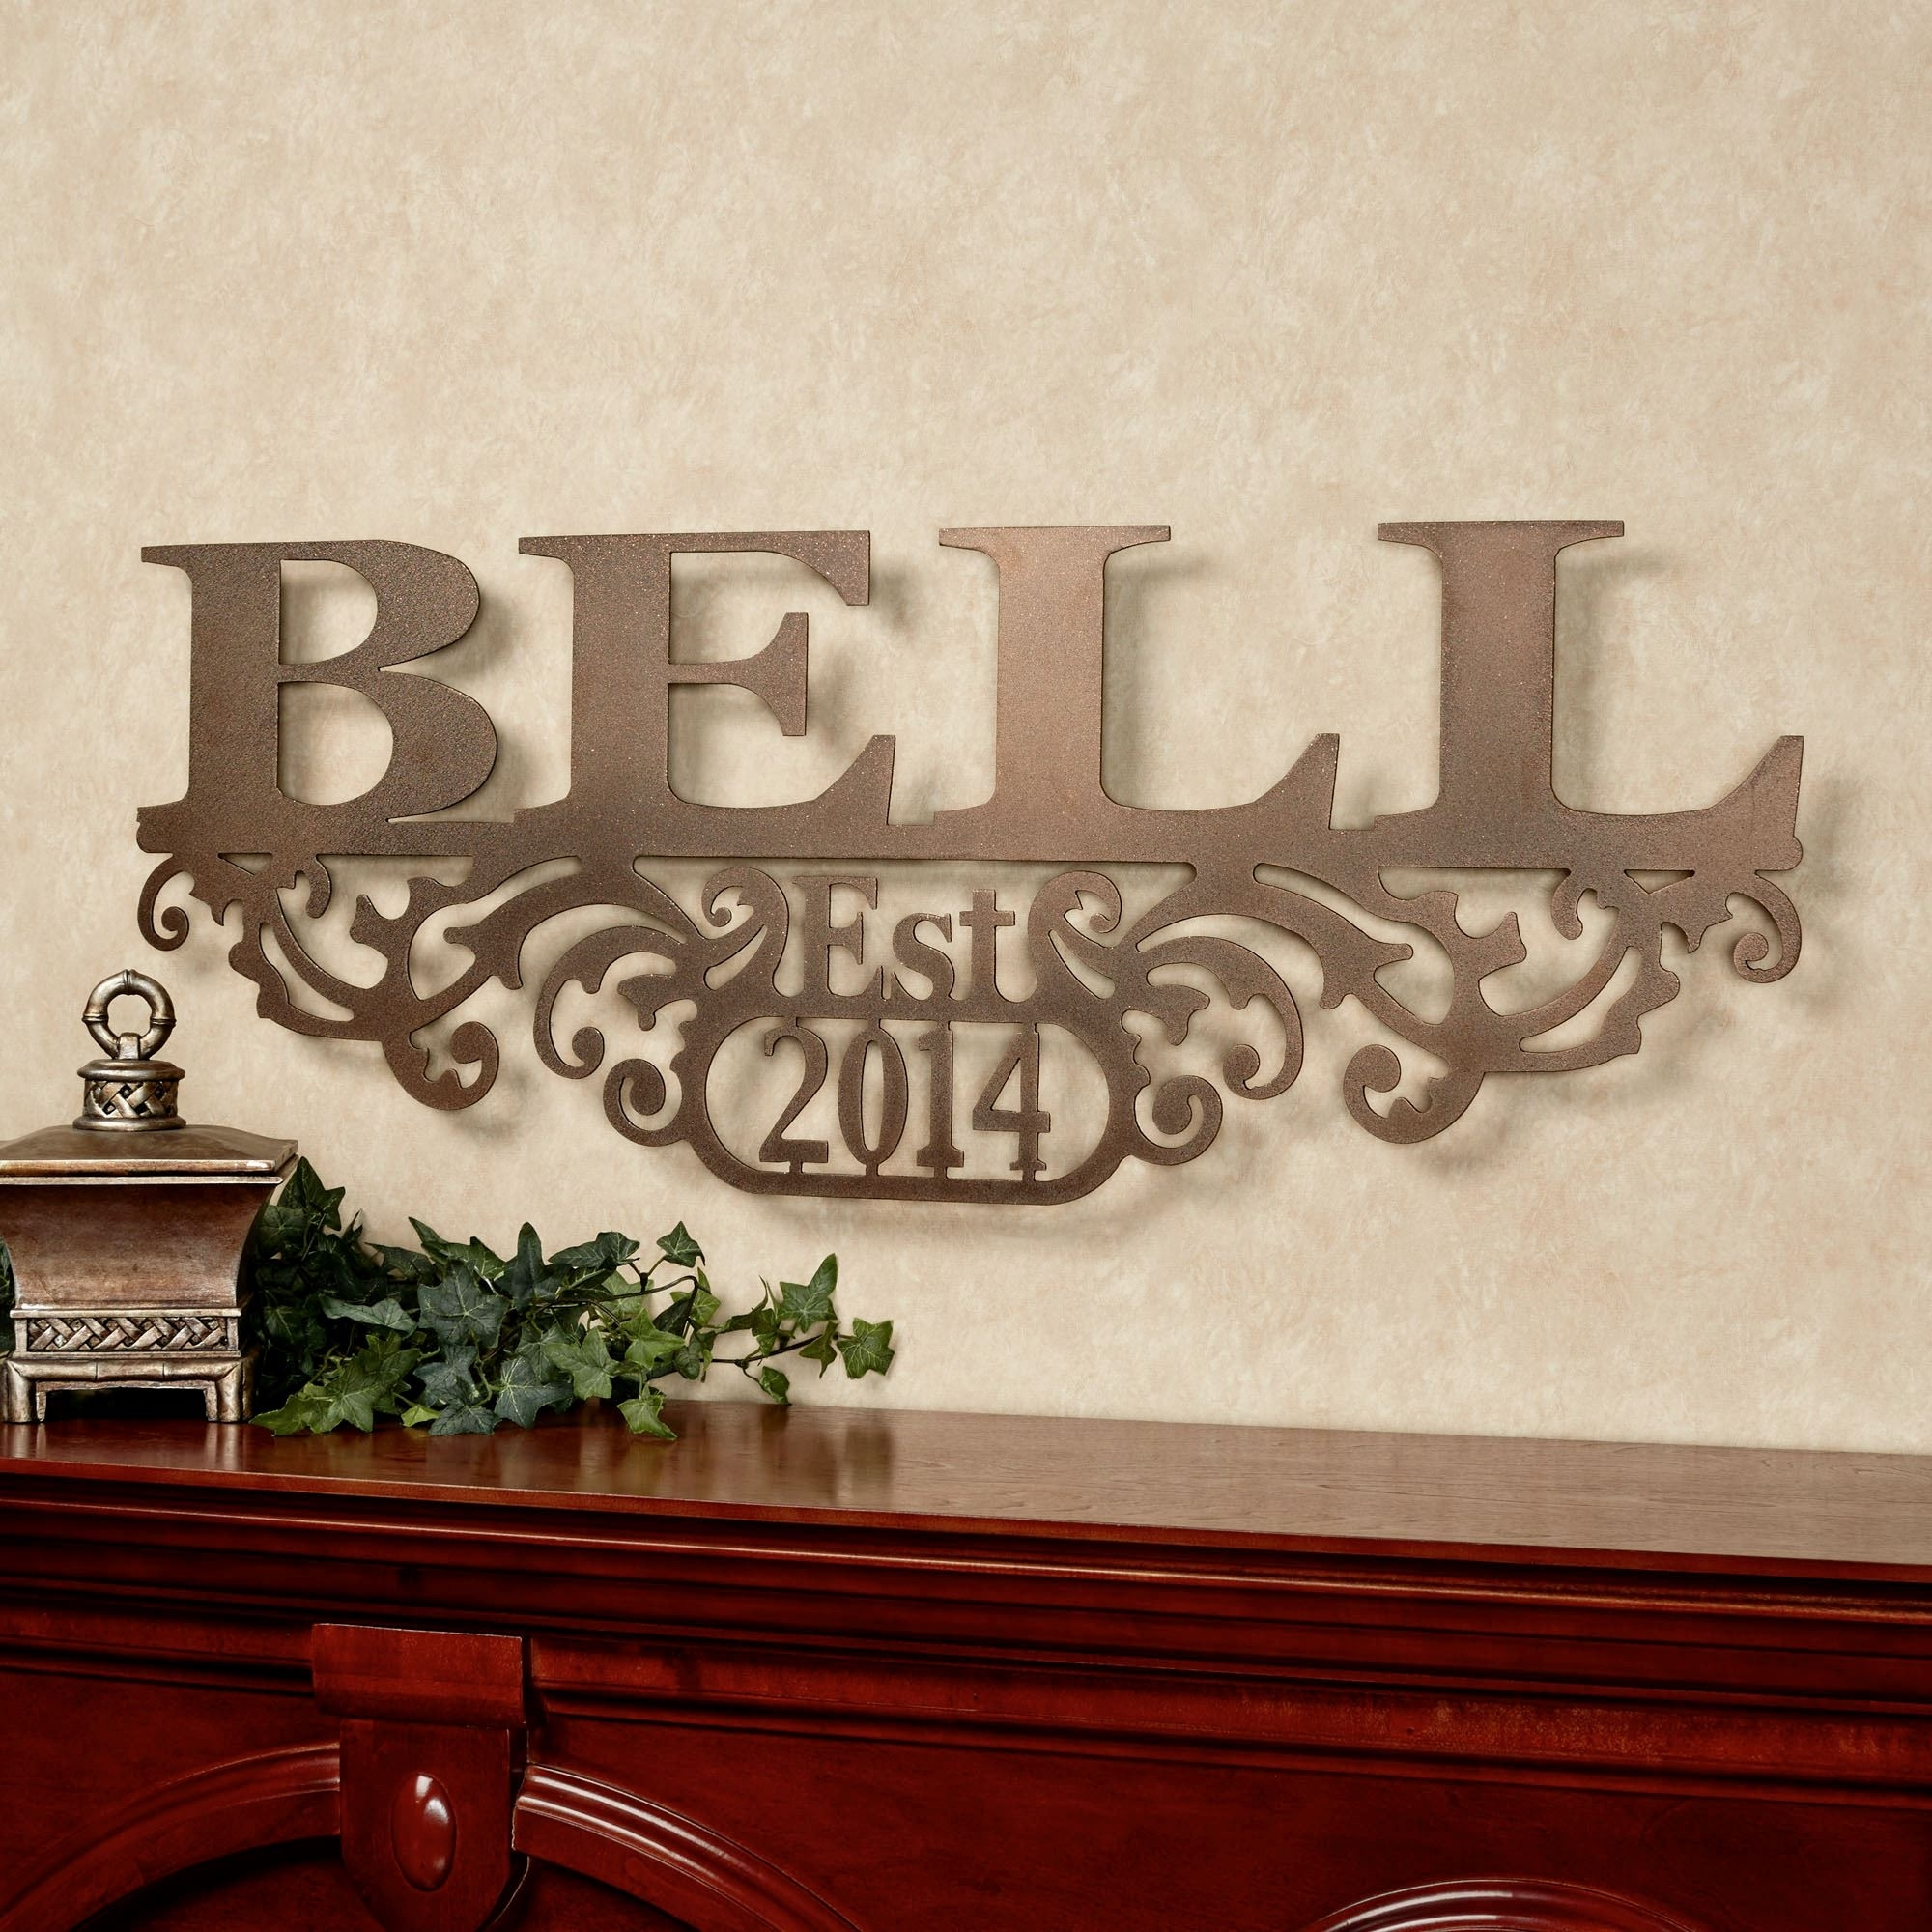 N Stunning Personalized Wall Art – Home Design And Wall Decoration Ideas Regarding Personalized Wall Art (View 3 of 20)